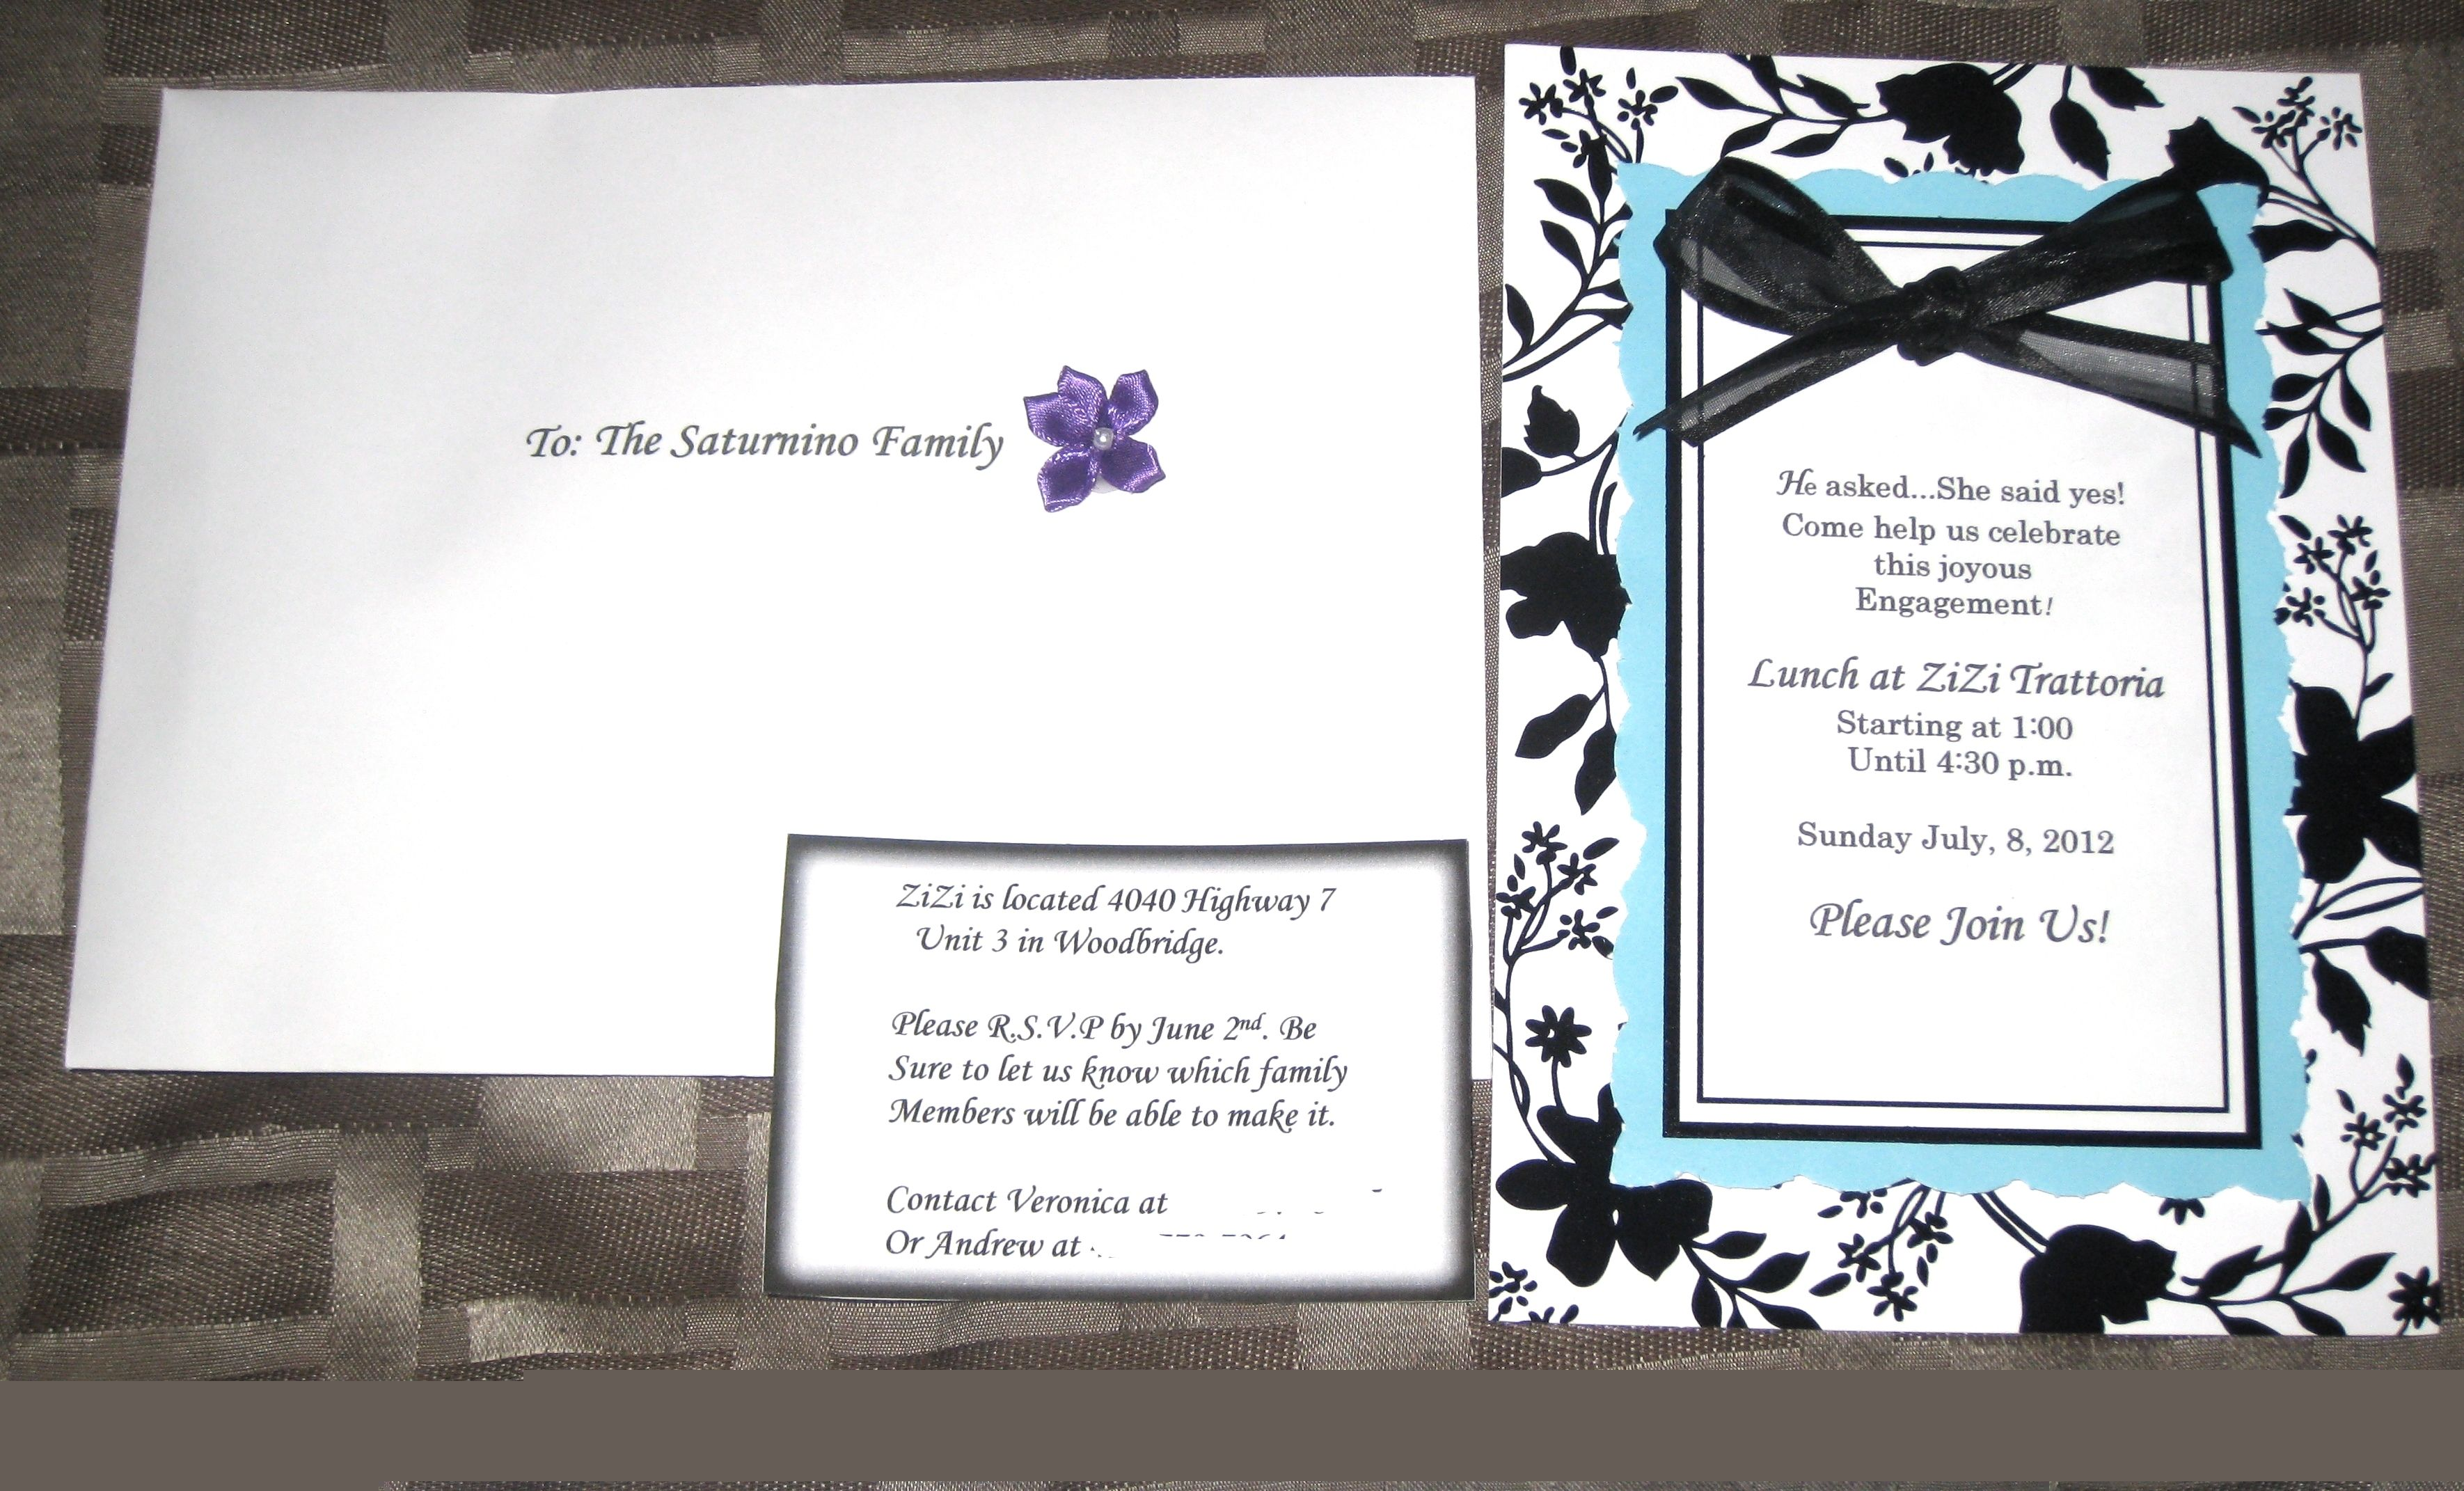 My Do It Yourself Engagement Party Invitations It Only Took Me 4 Hrs To Do P Engagement Party Invitations Engagement Party Event Planning